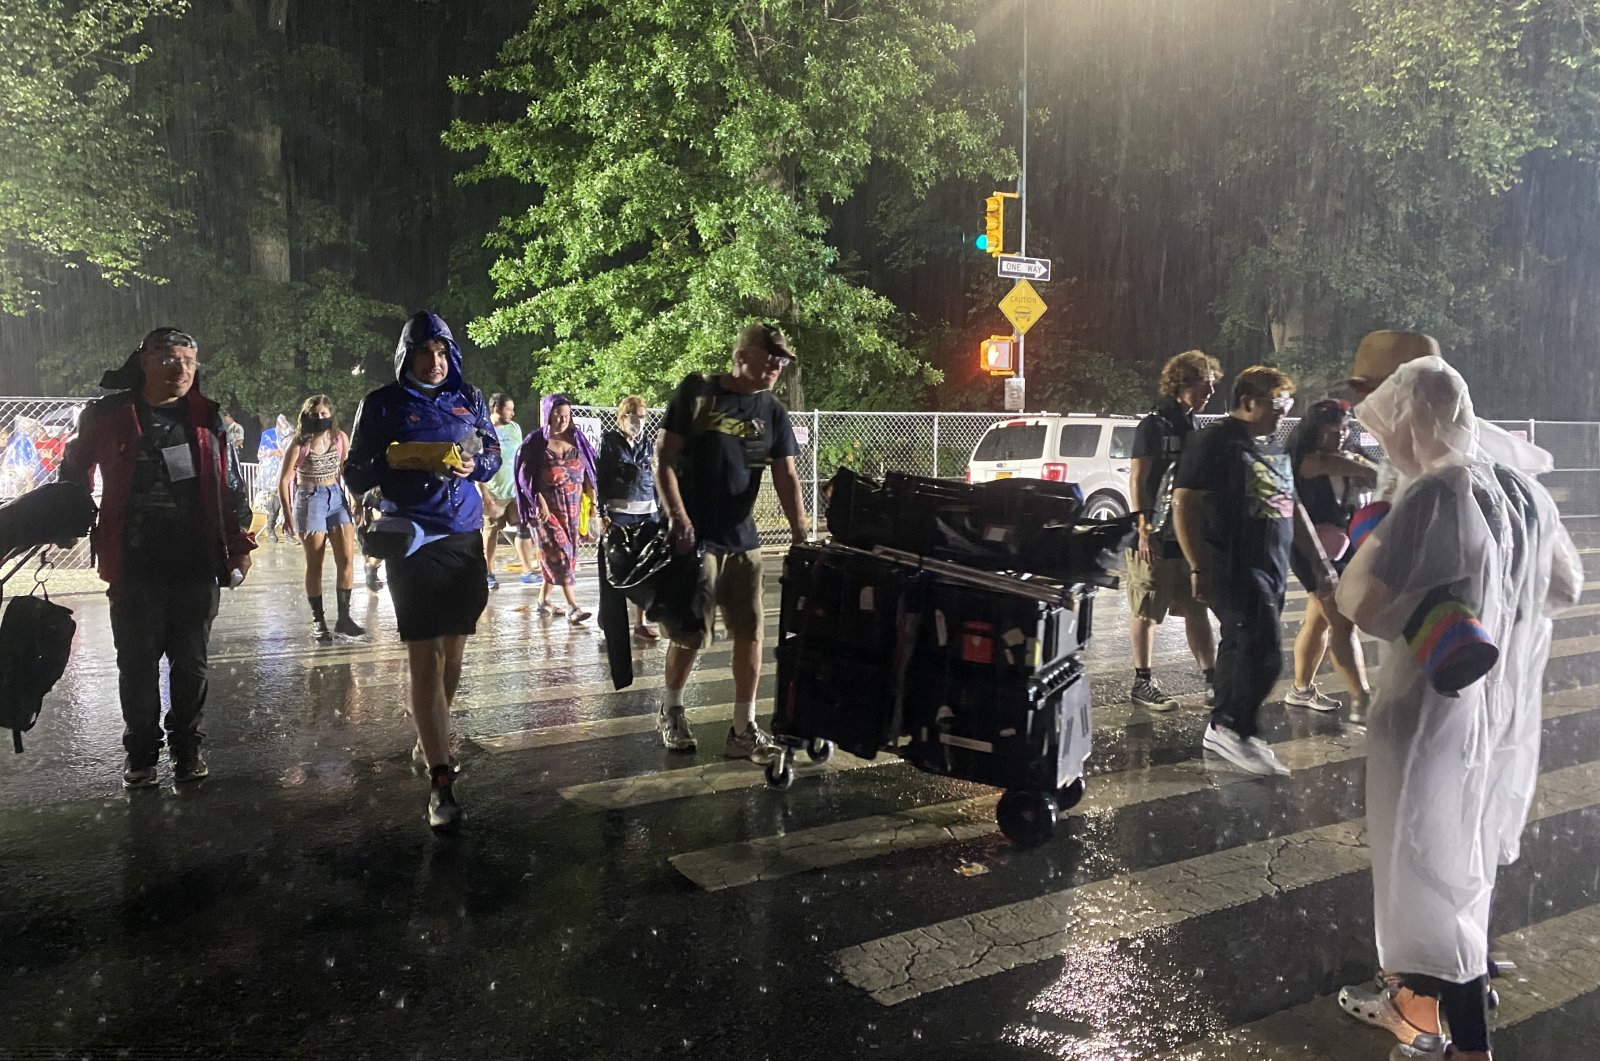 People are seen leaving a concert amid the Hurricane Henri's advance into the northeastern United States on Aug. 22, 2021 (AA Photo)